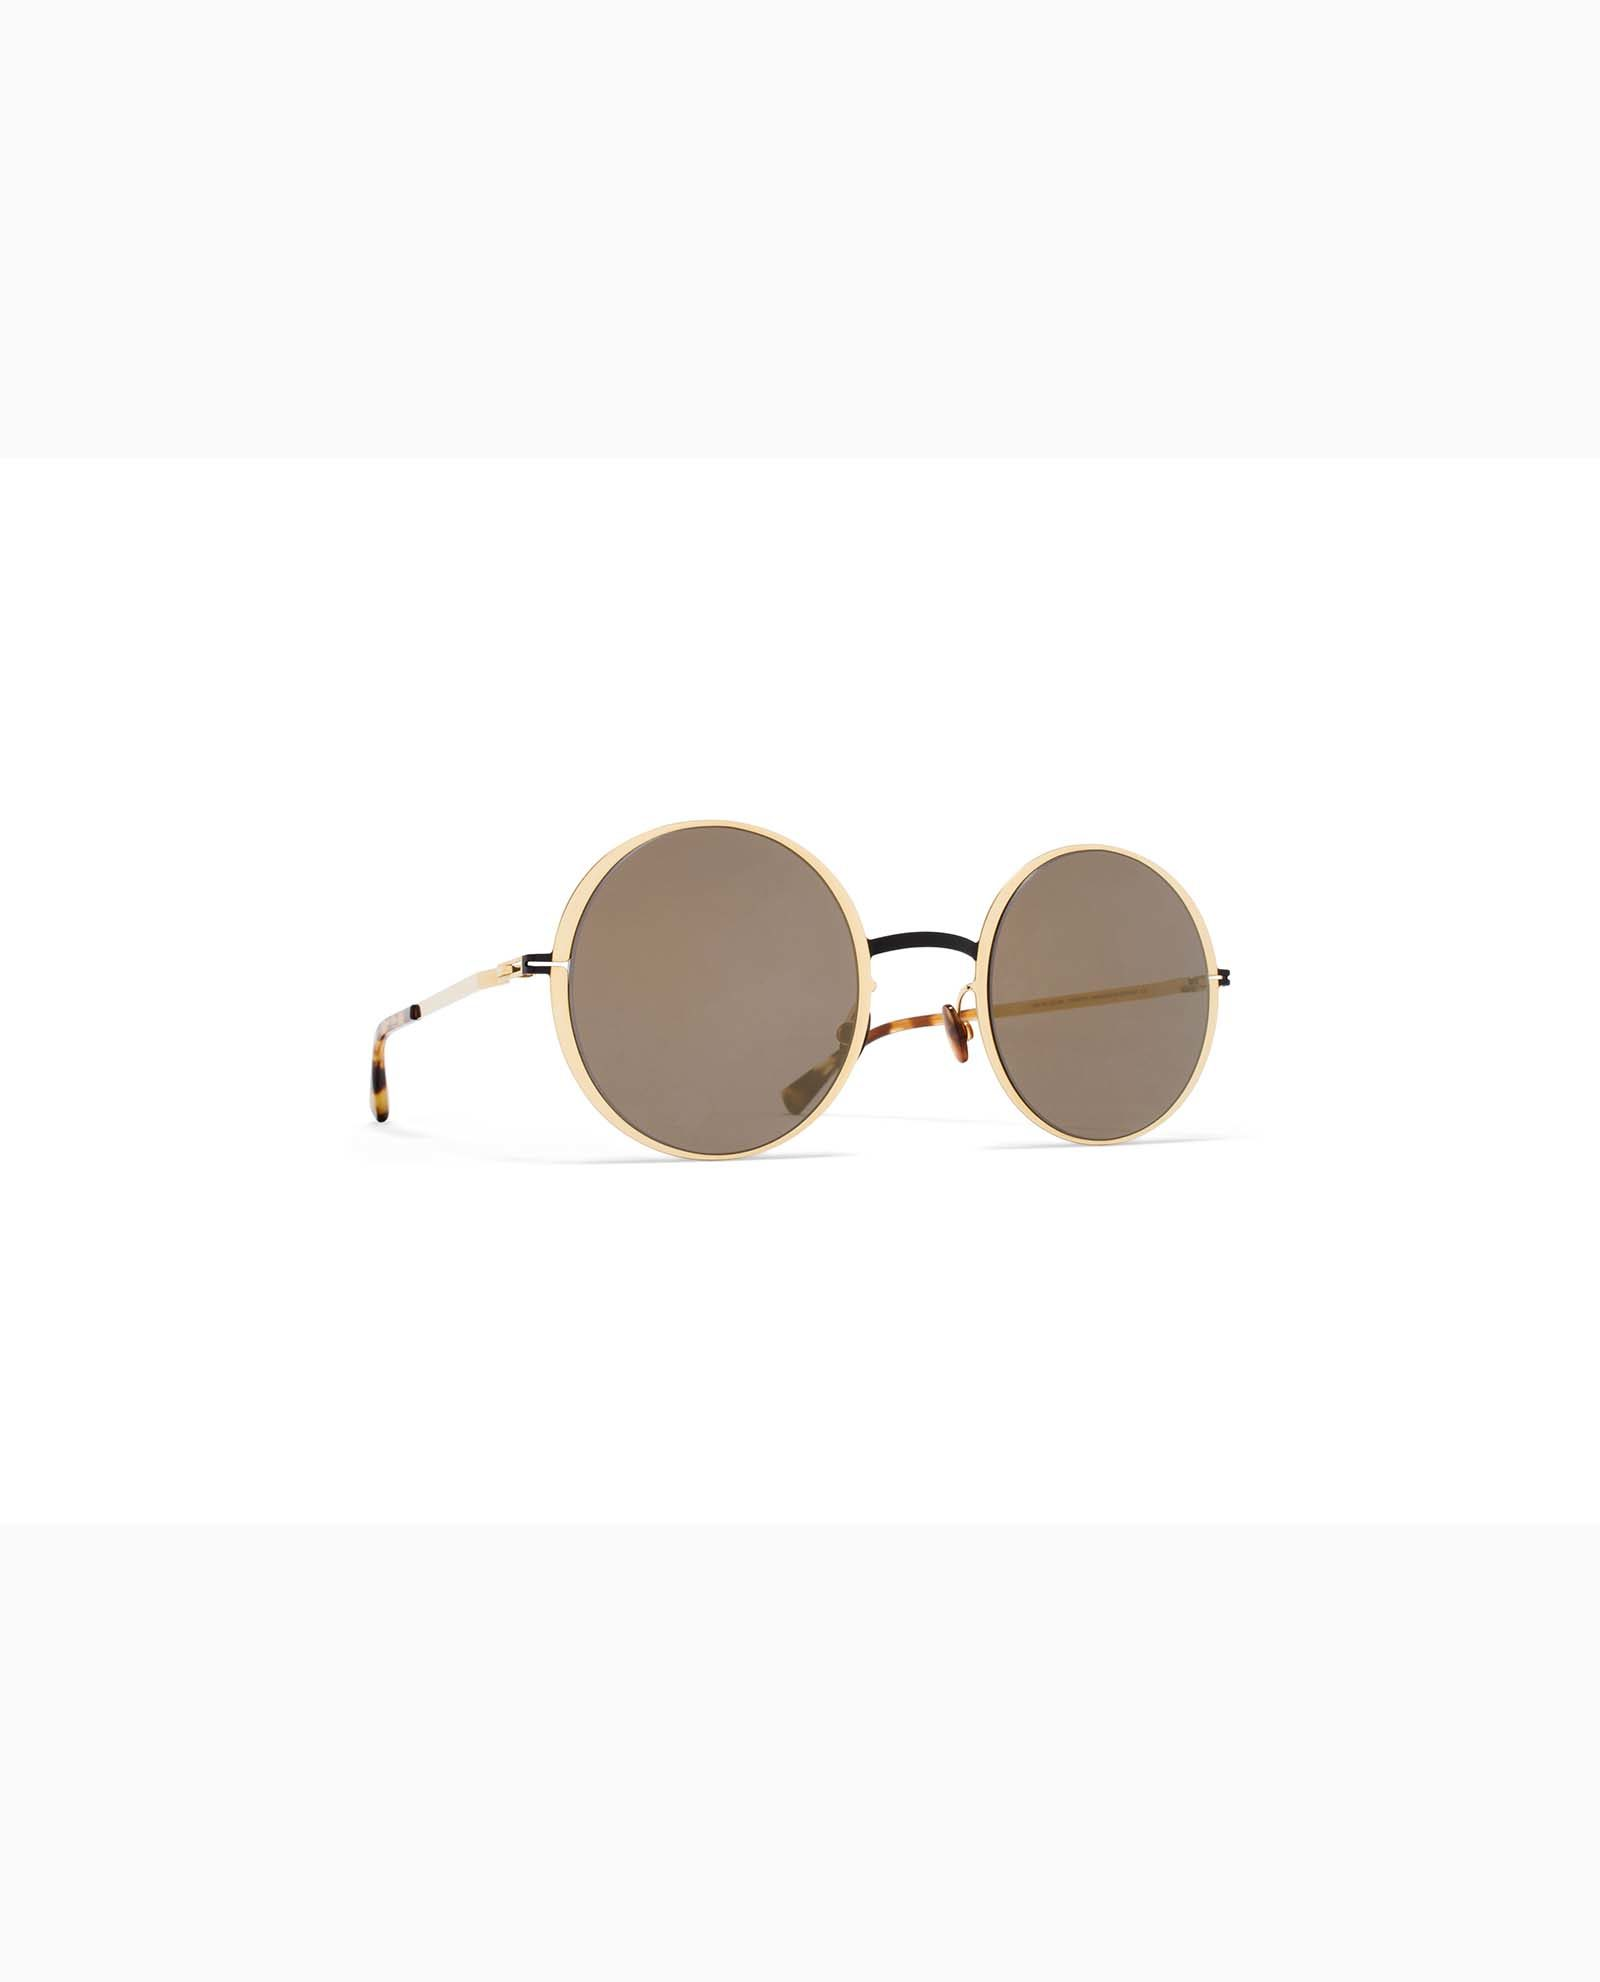 https://www.polydoruoptika.gr/wp-content/uploads/2018/05/mykita-lite-acetate-sun-joona-gold-black-brilliant-woman.jpg